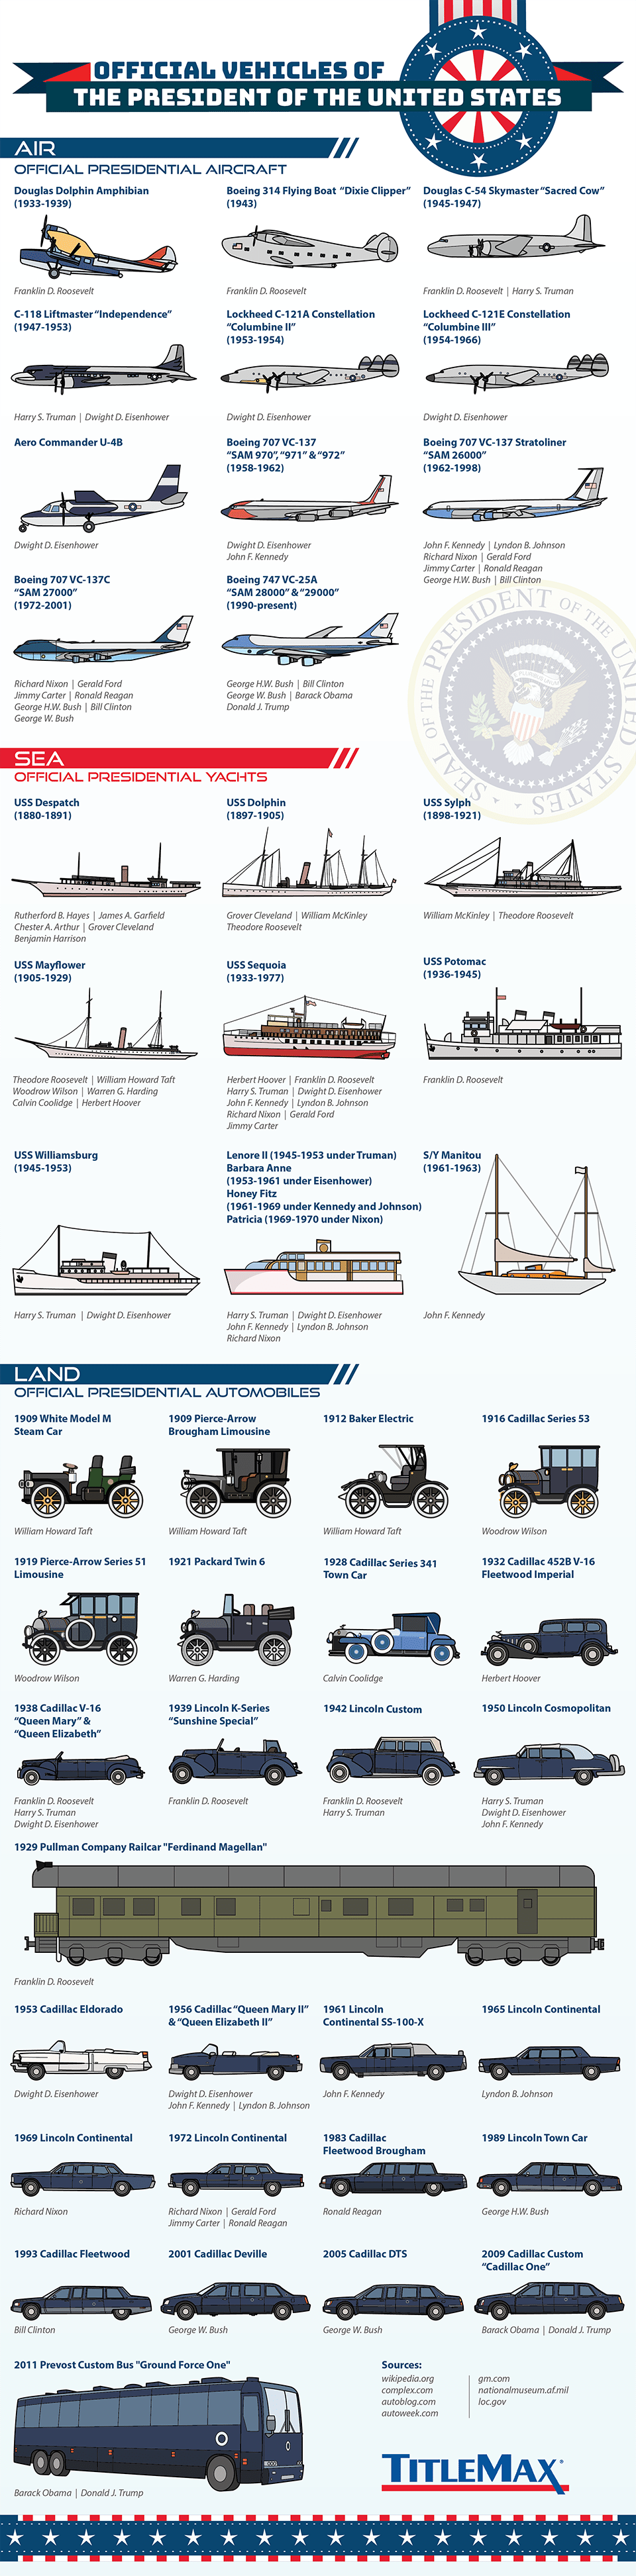 US Presidents Vehicles Throughout History Land Sea Air Infographic